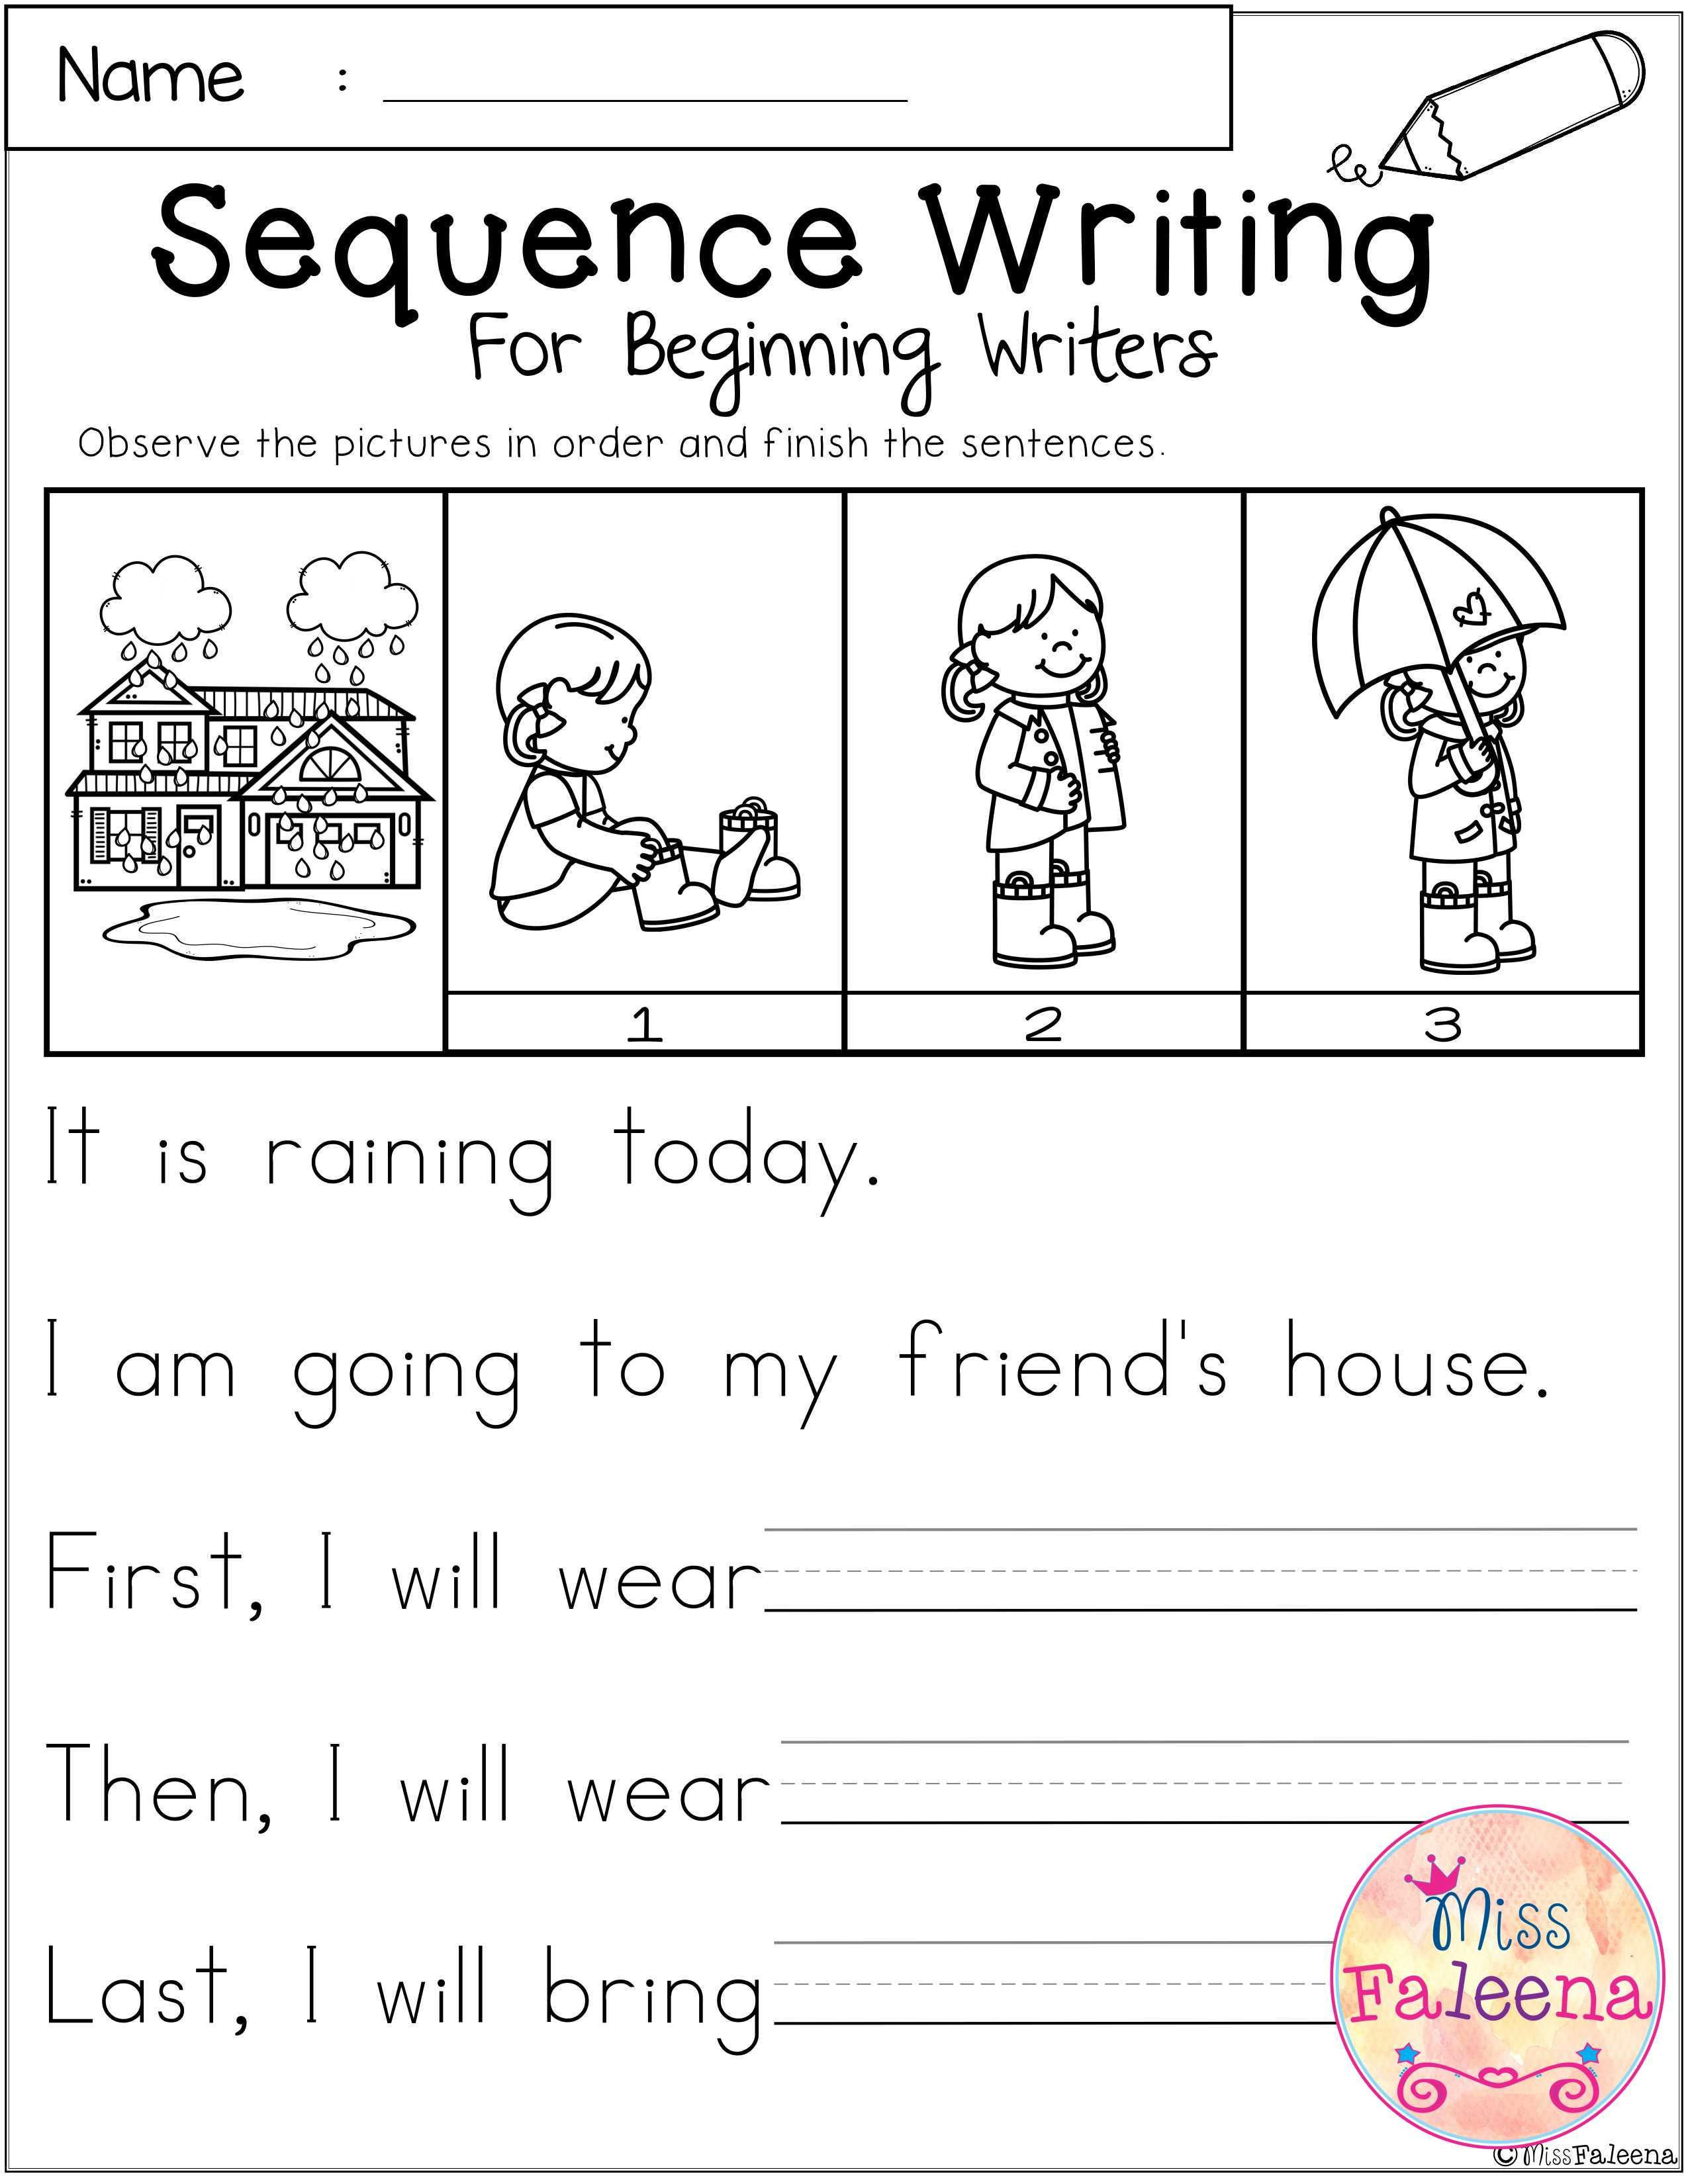 Kindergarten Sequence Worksheets March Sequence Writing for Beginning Writers